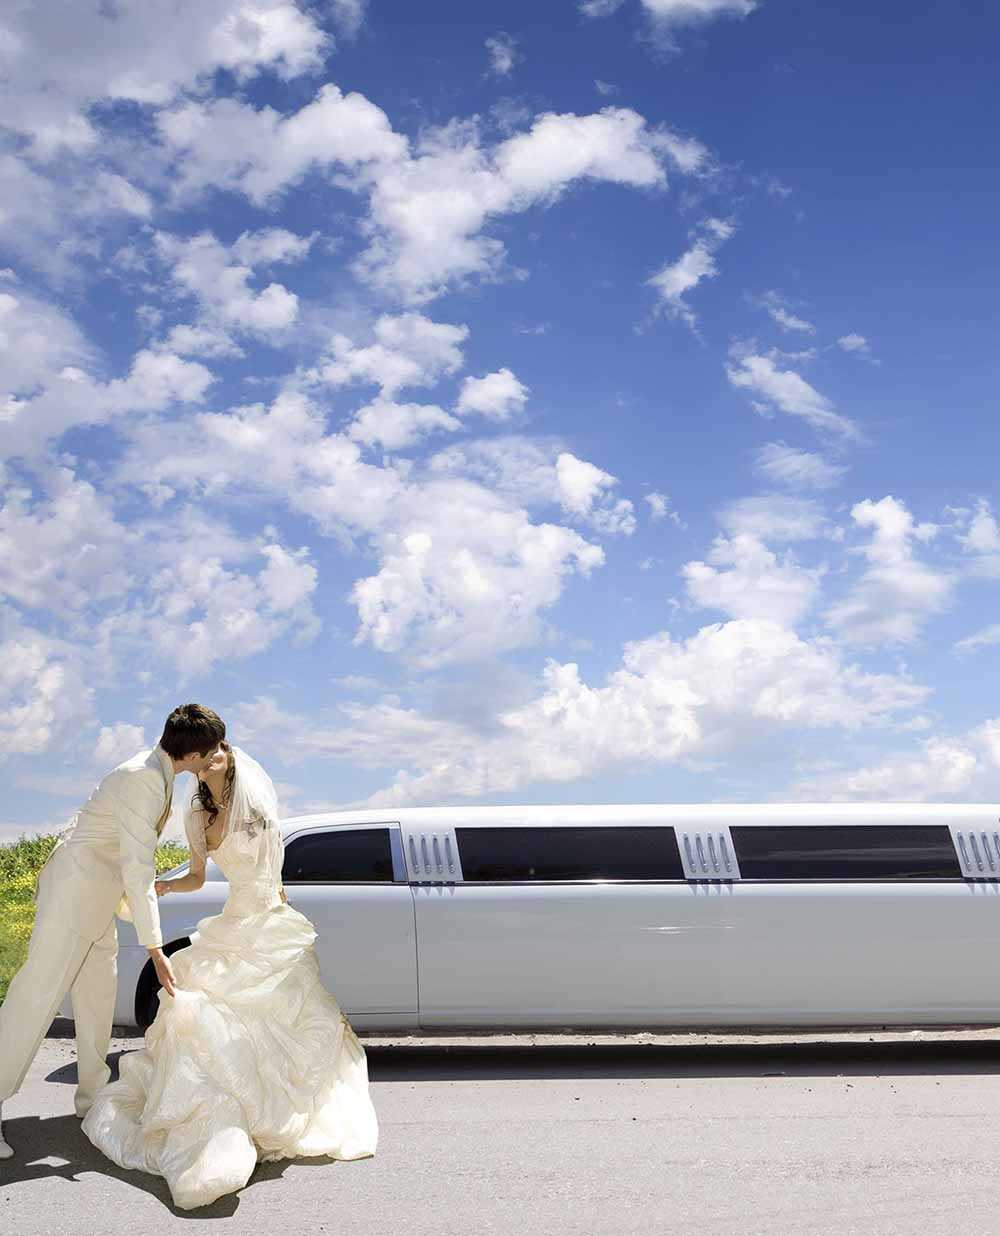 Wedding Limousine service Rockford Illinois